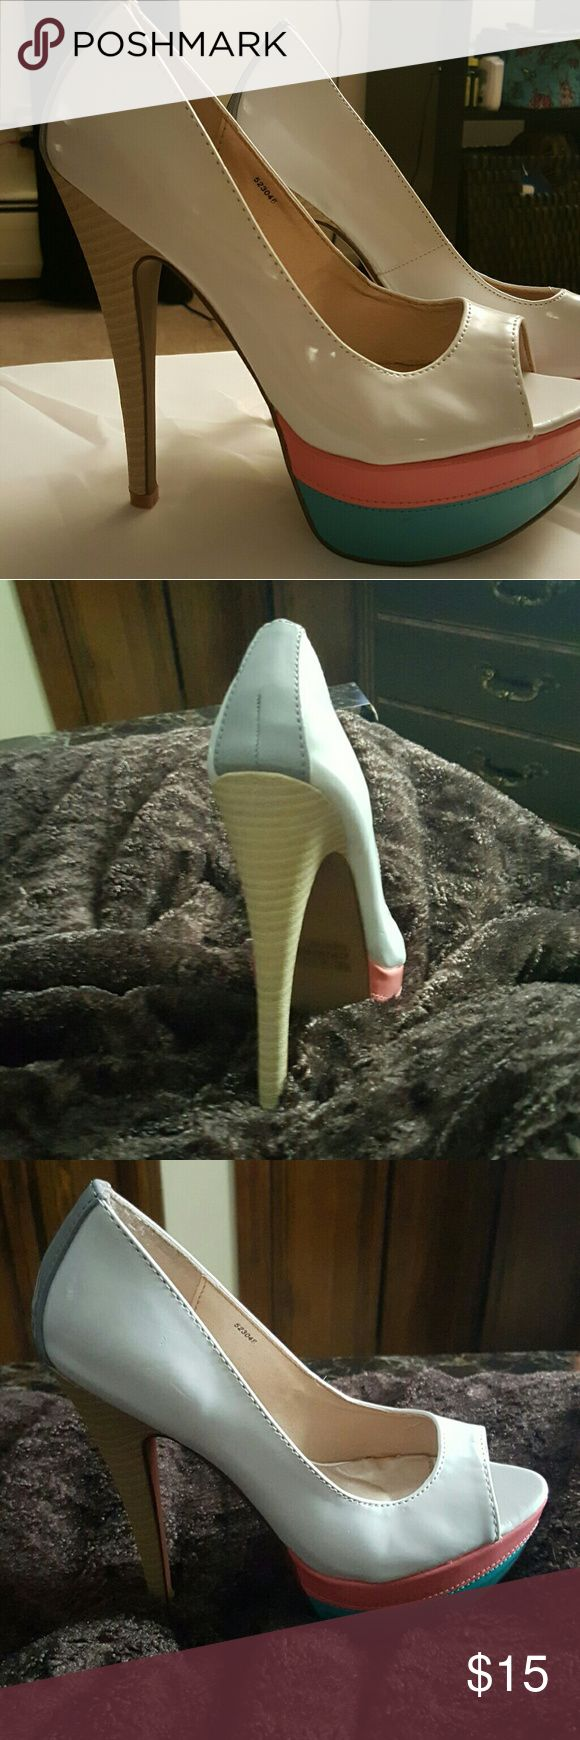 6in stiletto platform wedge Brand new Charlotte rouse Shoes Heels